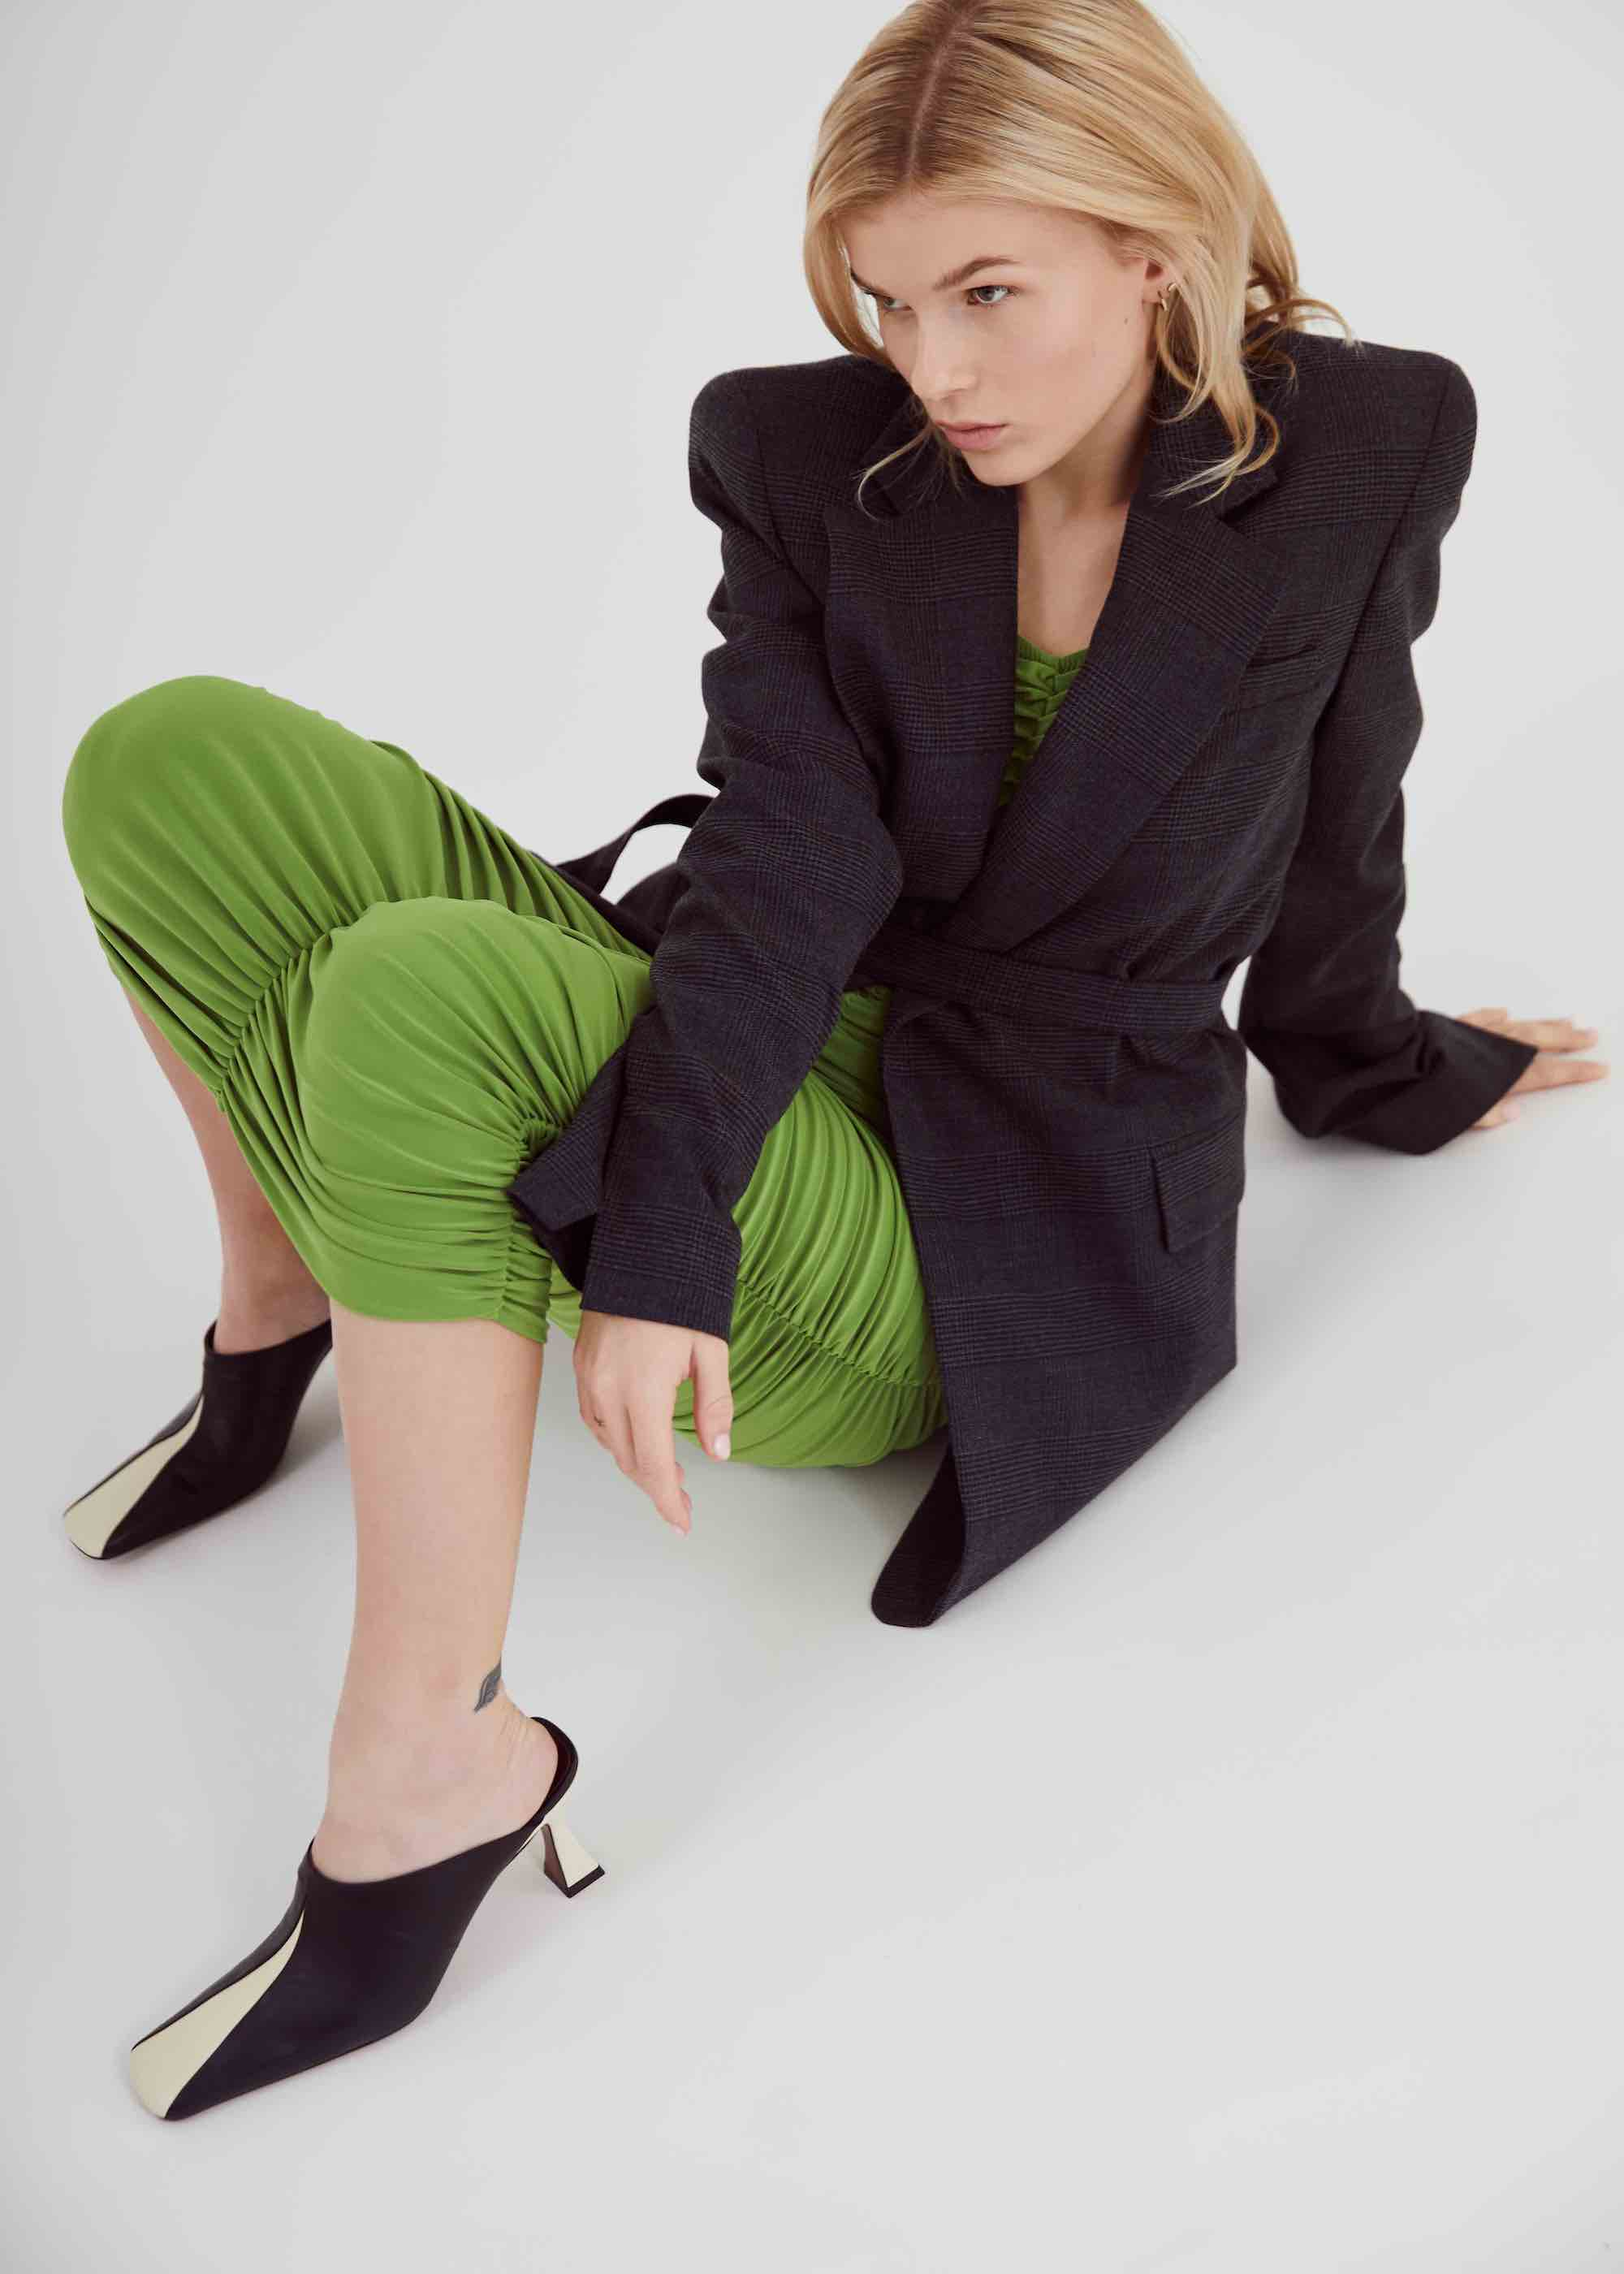 Nykki wears black blazer and green joggers